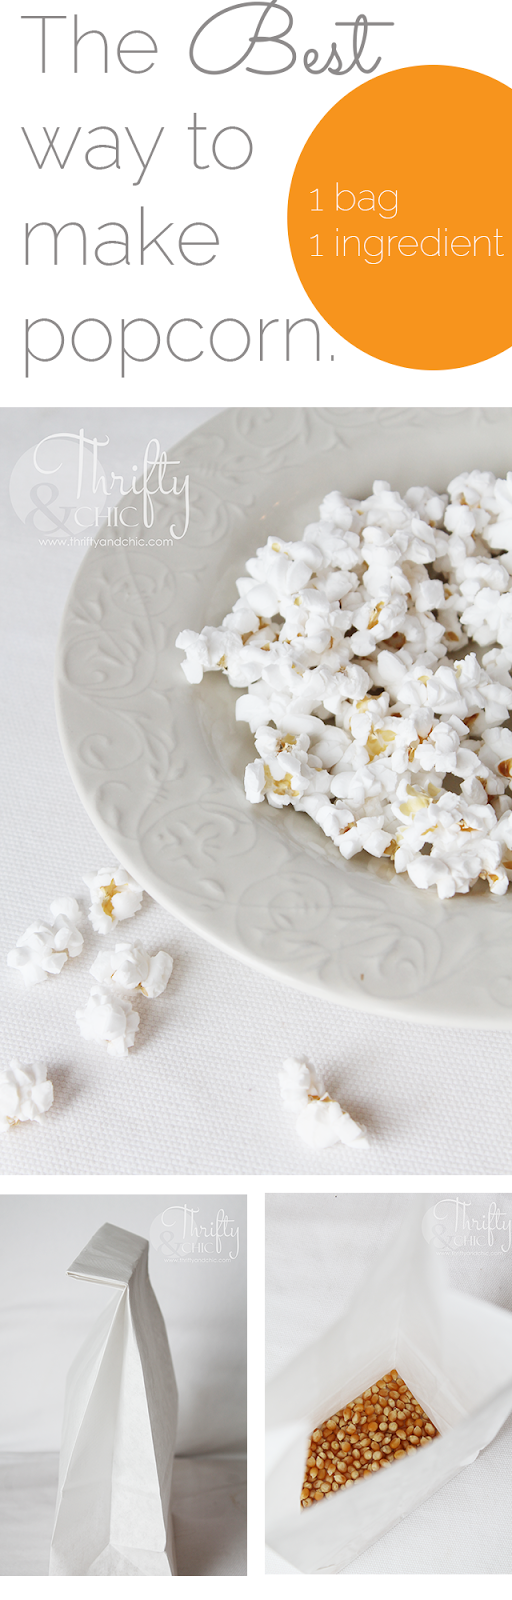 The BEST way to make popcorn - 1 bag, 1 ingredient! So easy and yummy!